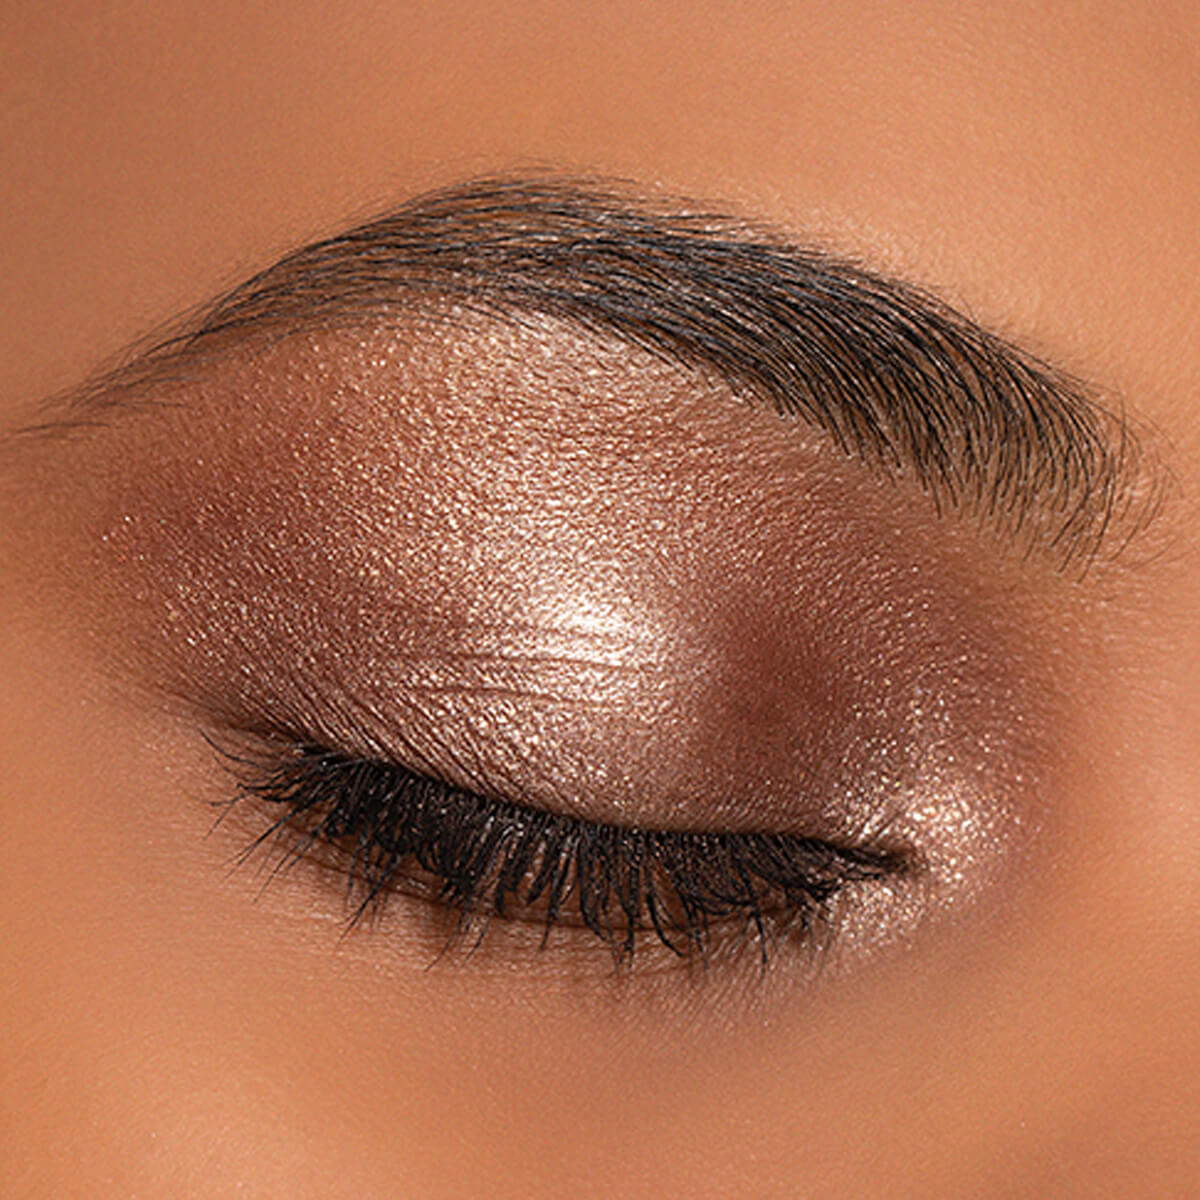 Copper eyeshadow Look,Copper Eye Makeup Look